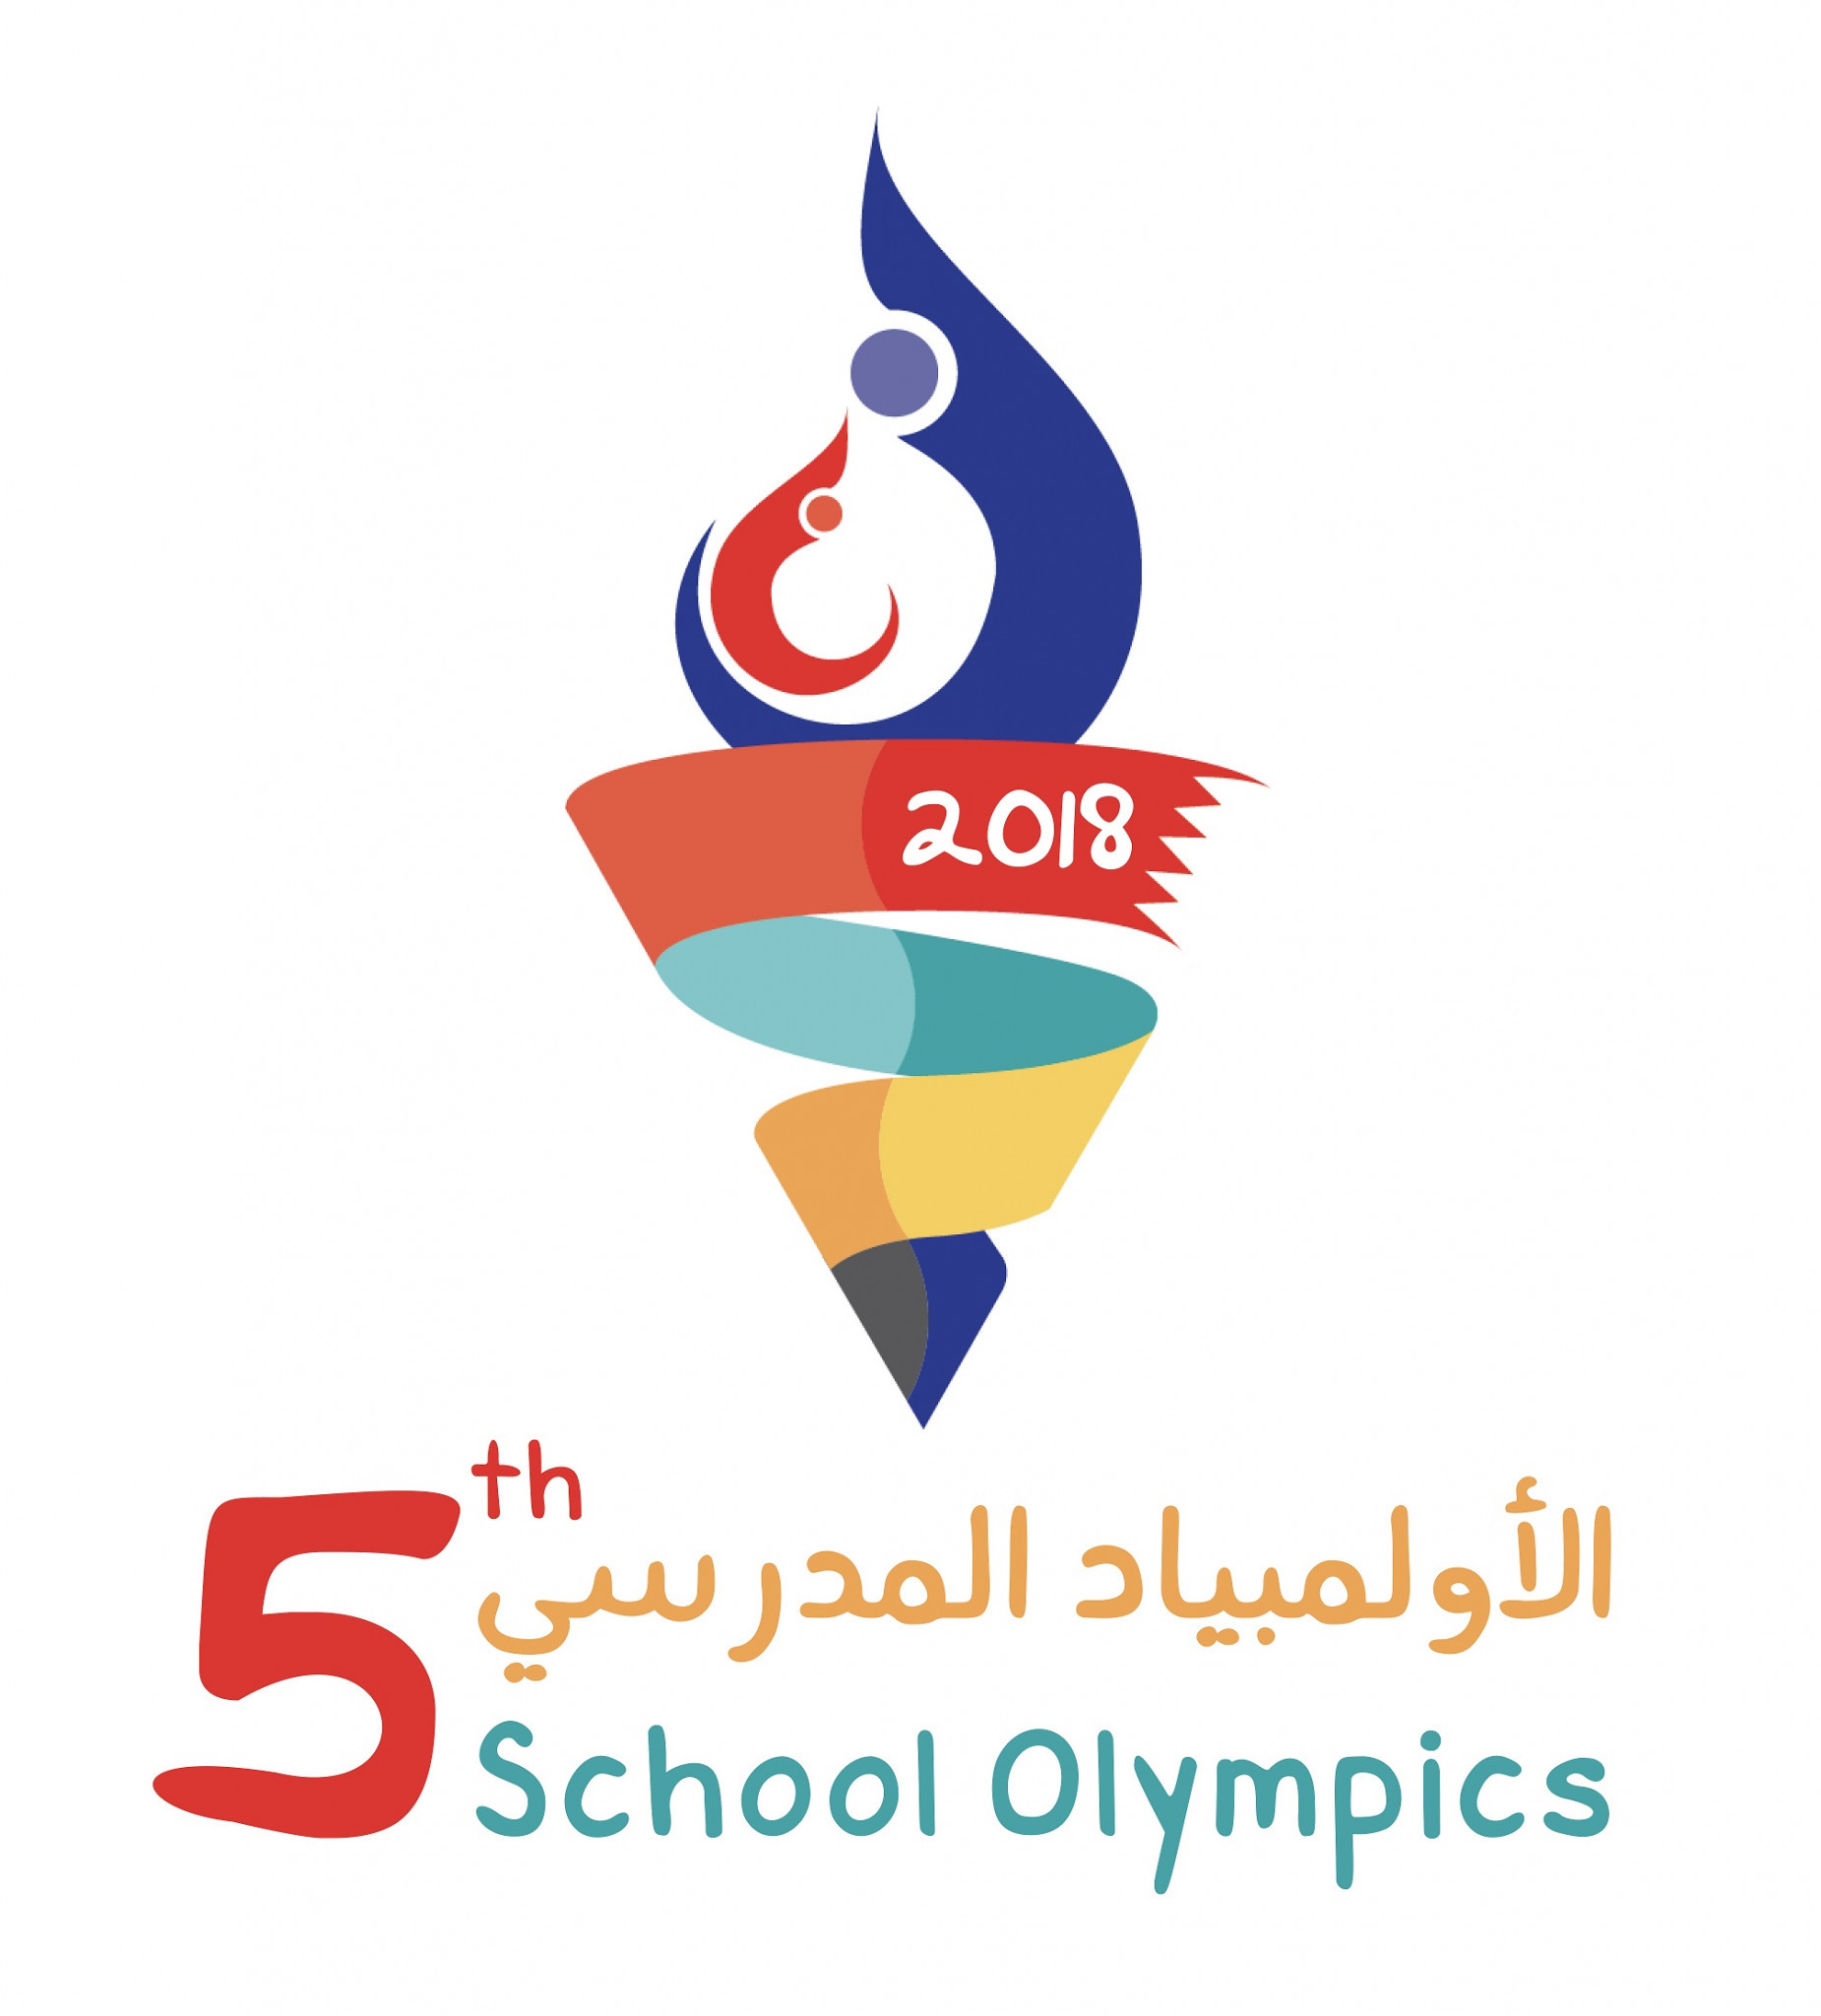 Bahrain Olympic Committee oversee preparations for School Mini Olympics